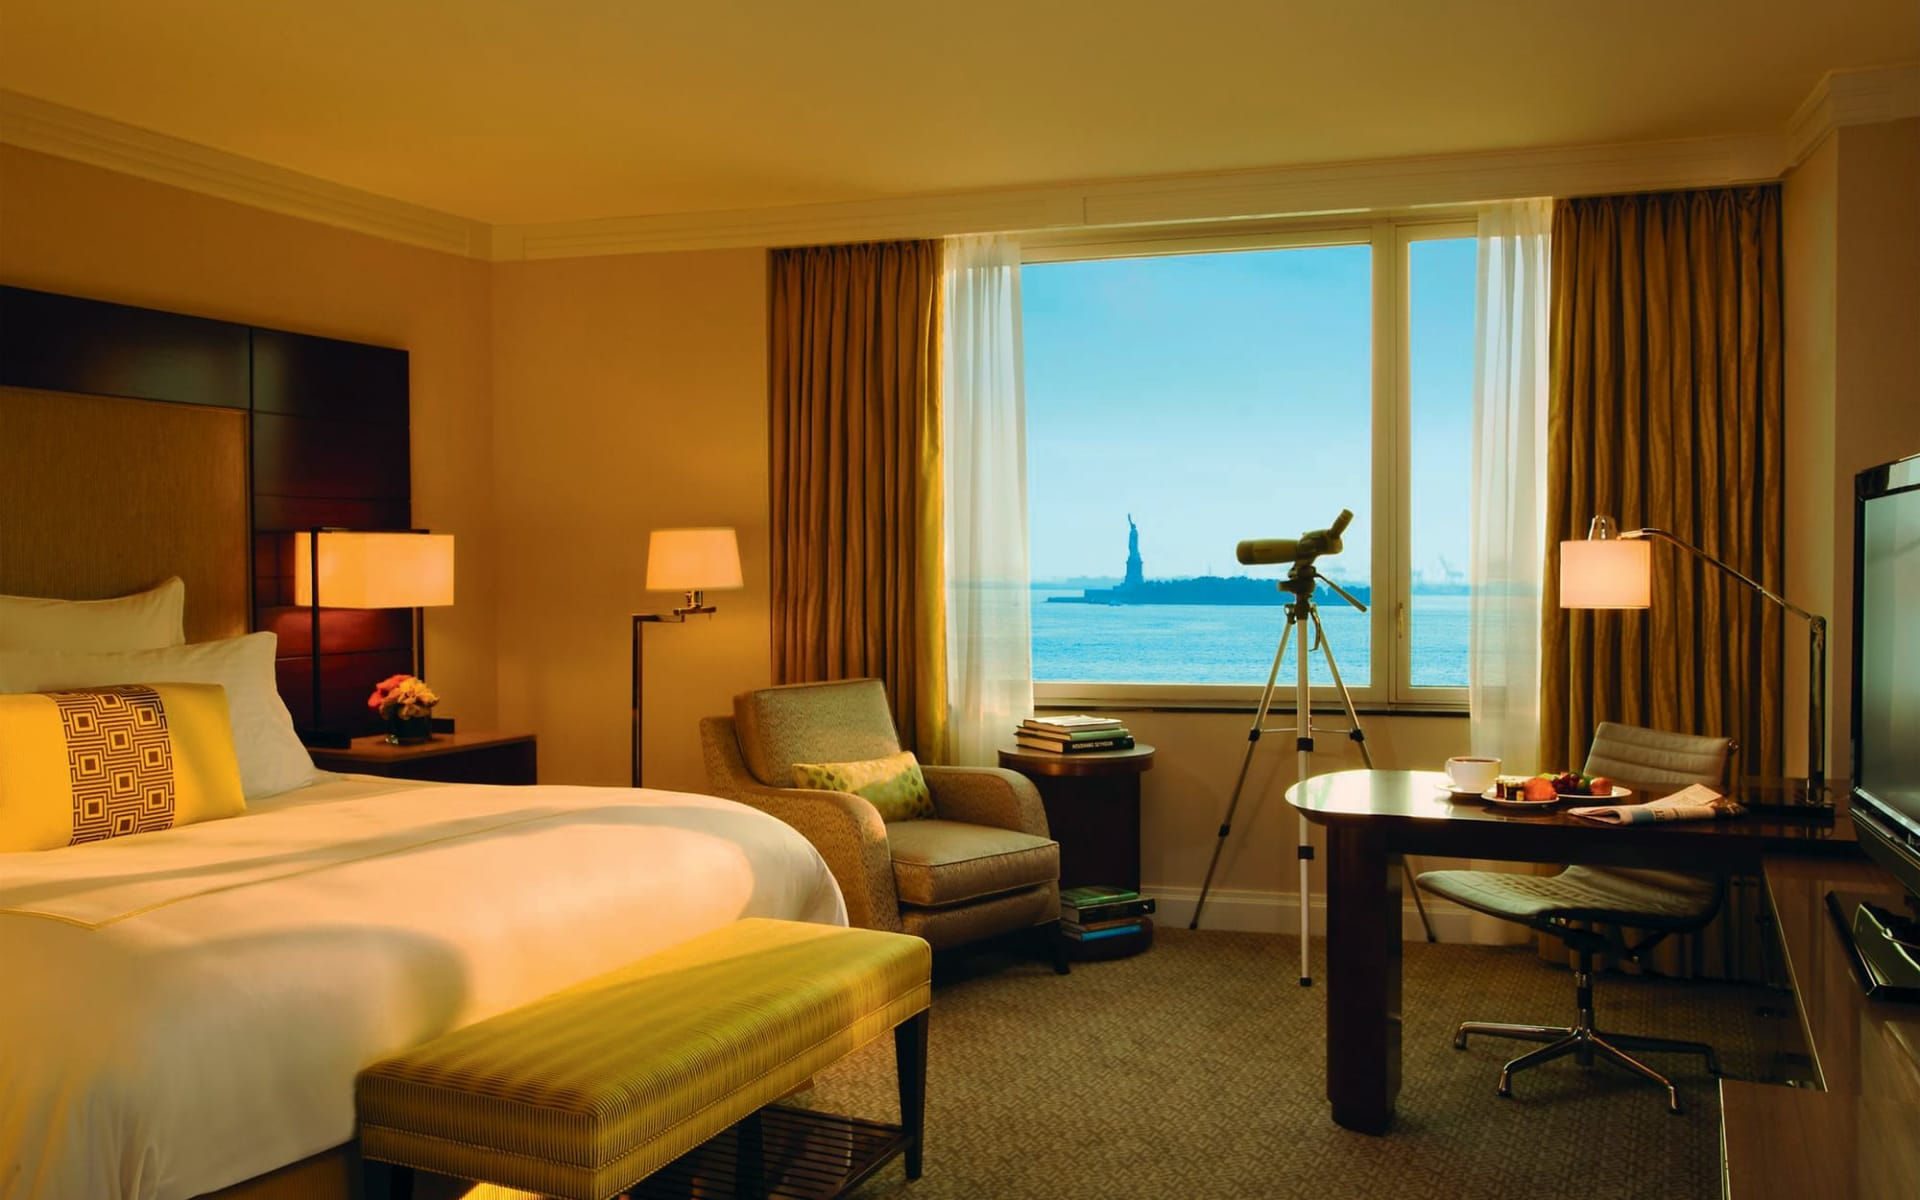 The Wagner at the Battery in New York - Manhattan: zimmer the ritz carlton doppelzimmer meerblick